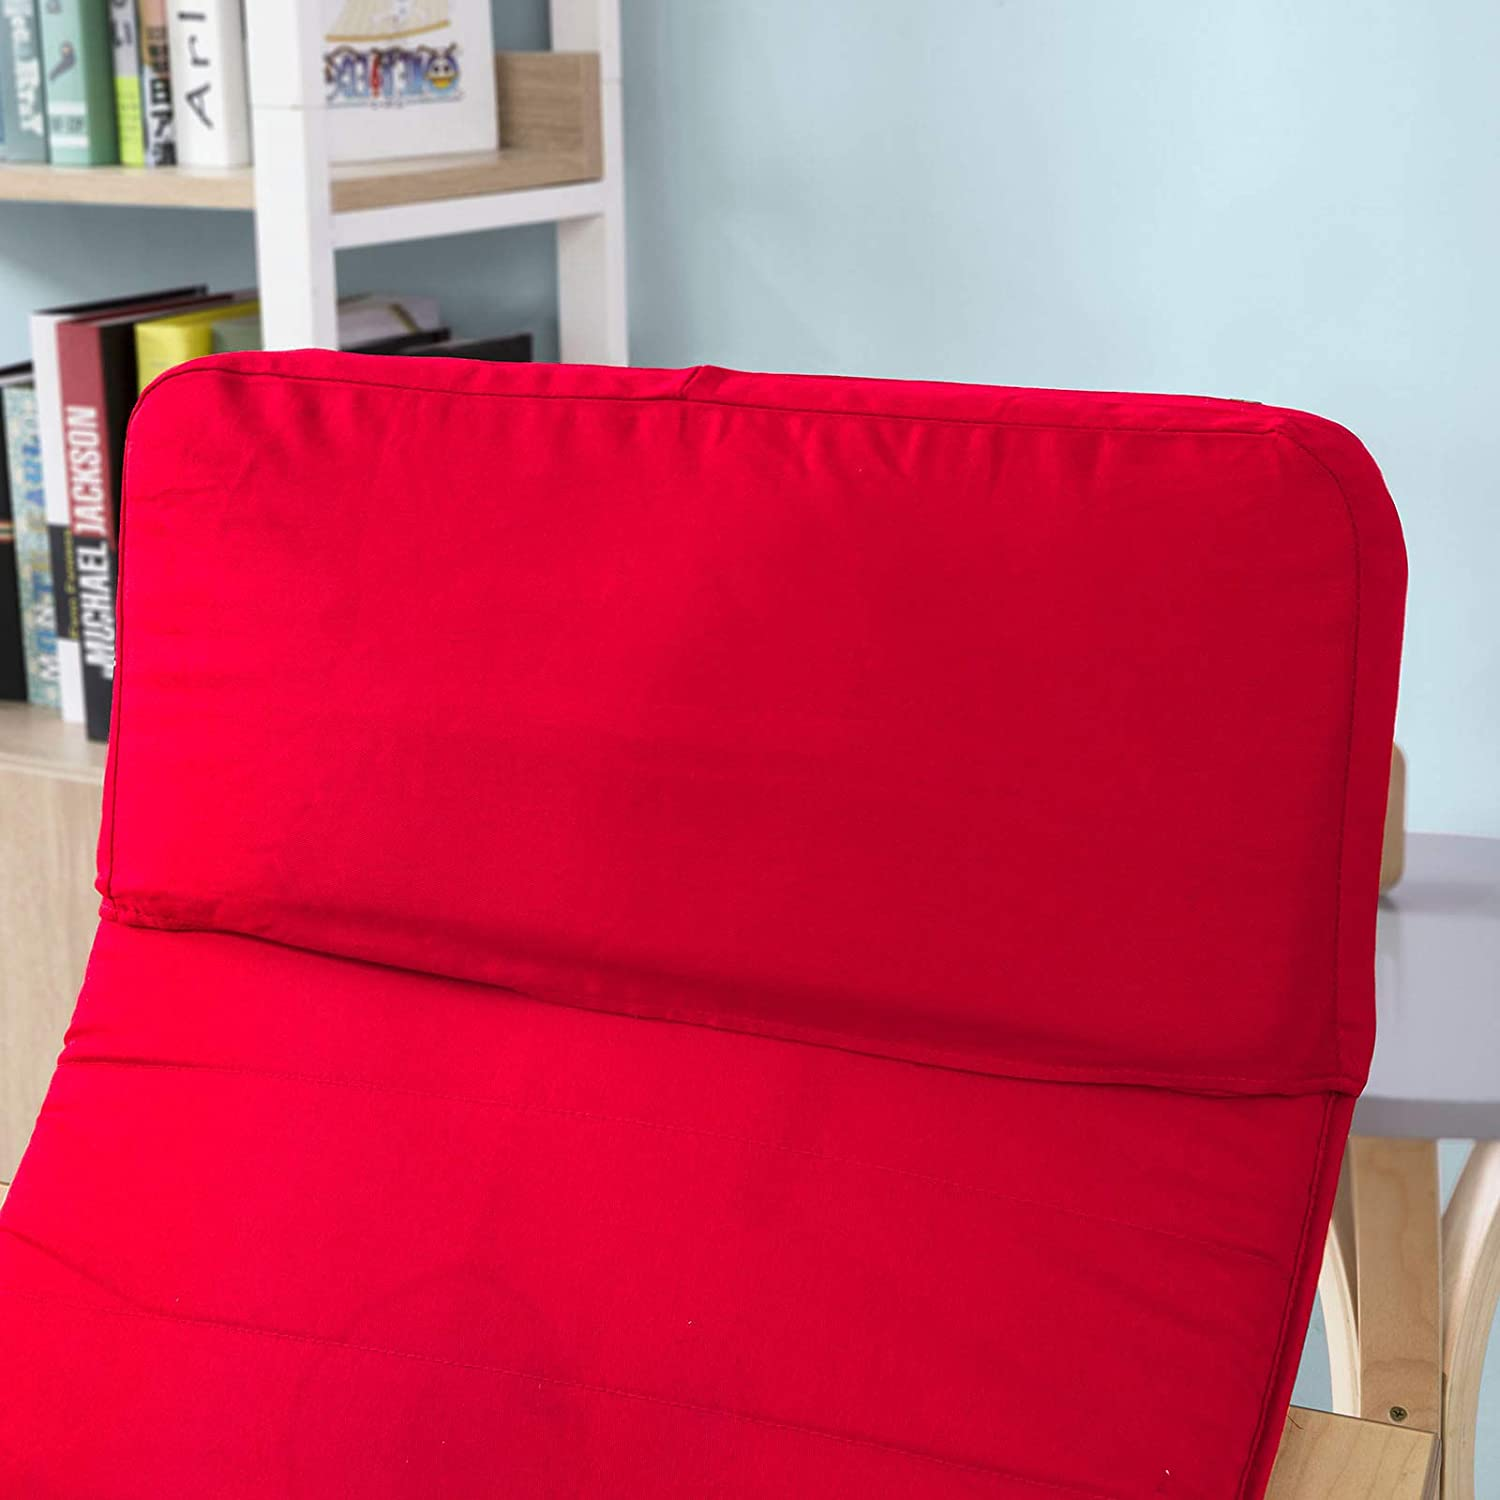 SoBuy Comfortable Relax Rocking Chair with Foot Rest,Lounge Chair,Recliners Poly-Cotton Fabric Cushion Red